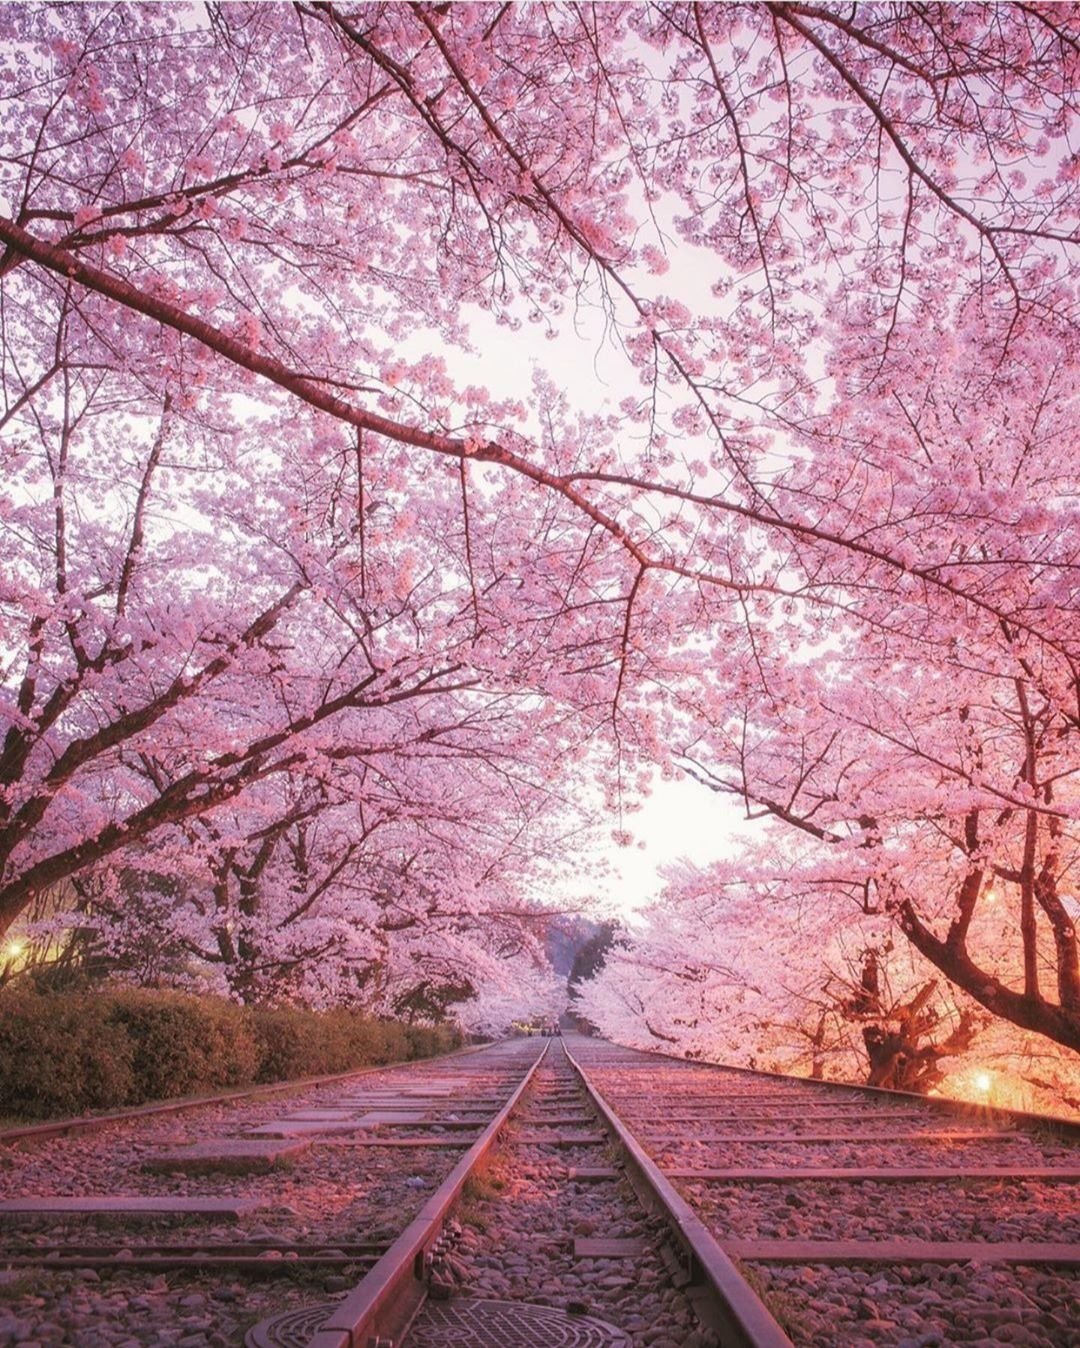 Top 15 Tourist Attractions In Japan Tour To Planet Beautiful Pink Flowers Cherry Blossom Season Japan